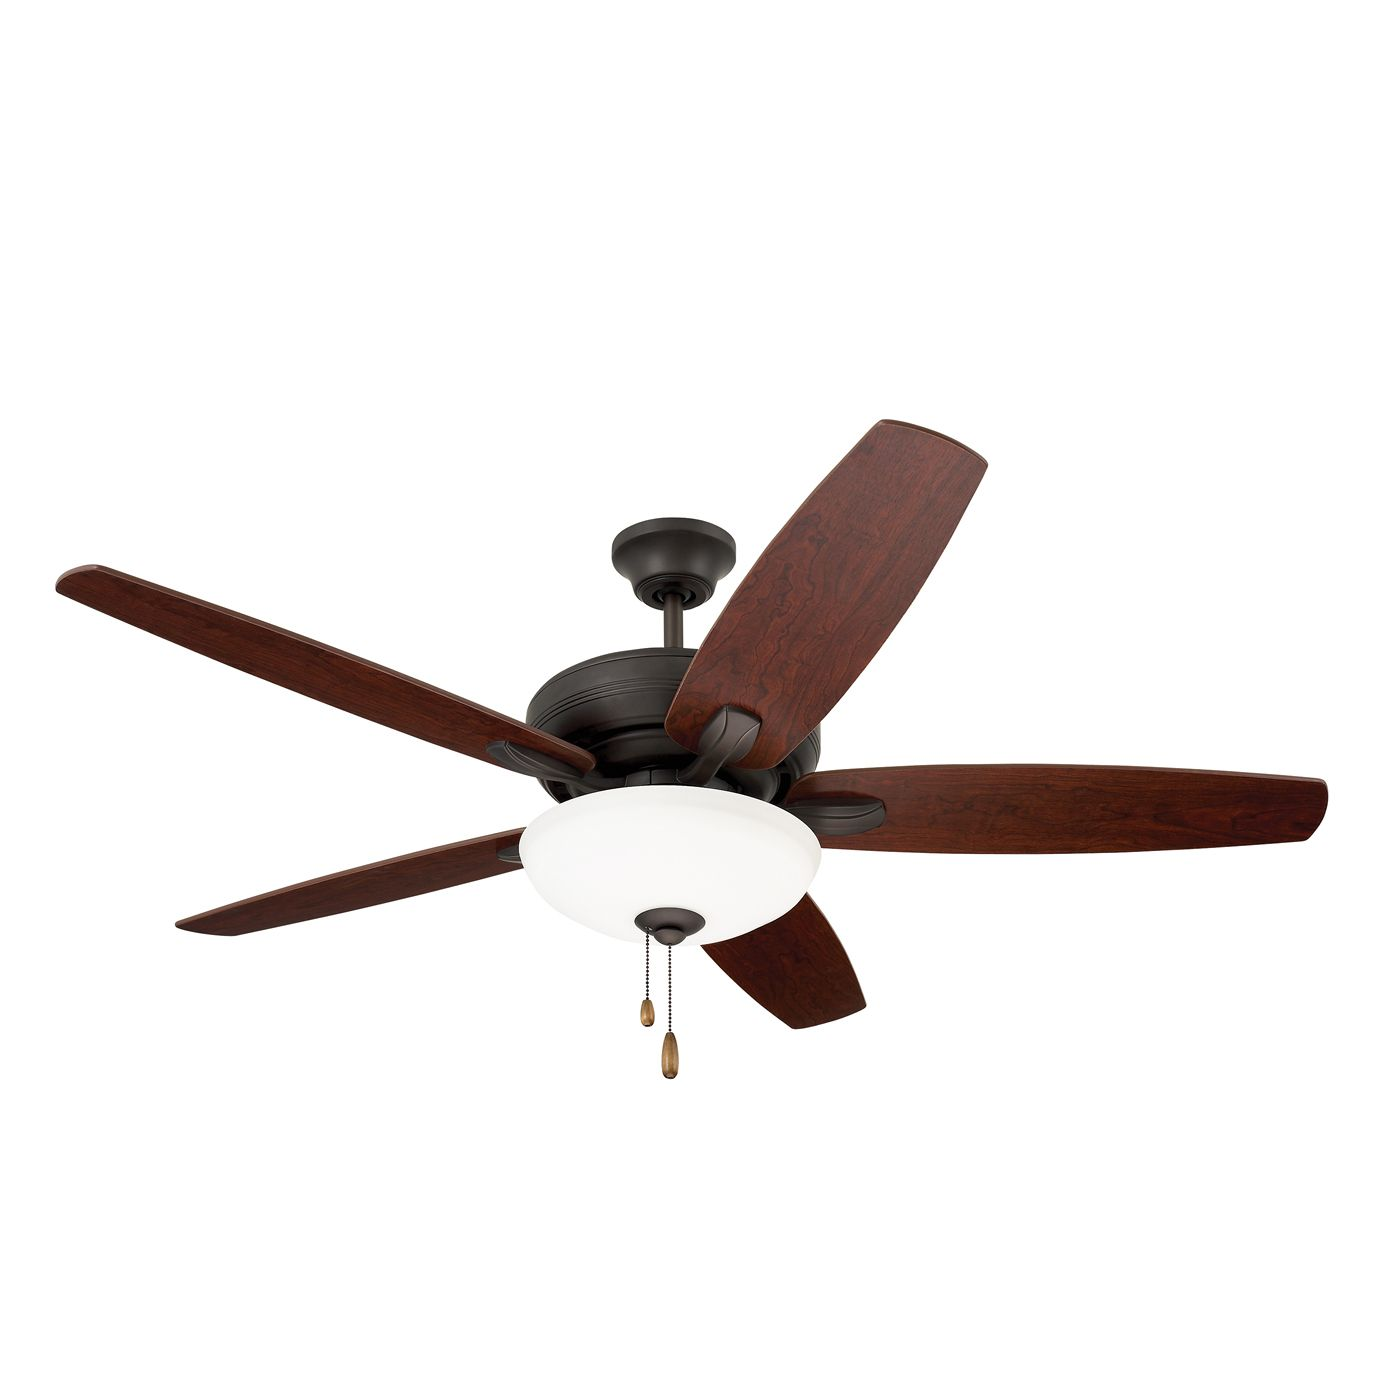 Emerson electric cf717 52 in ashland ceiling fan atg stores emerson electric cf717 52 in ashland ceiling fan atg stores mozeypictures Choice Image